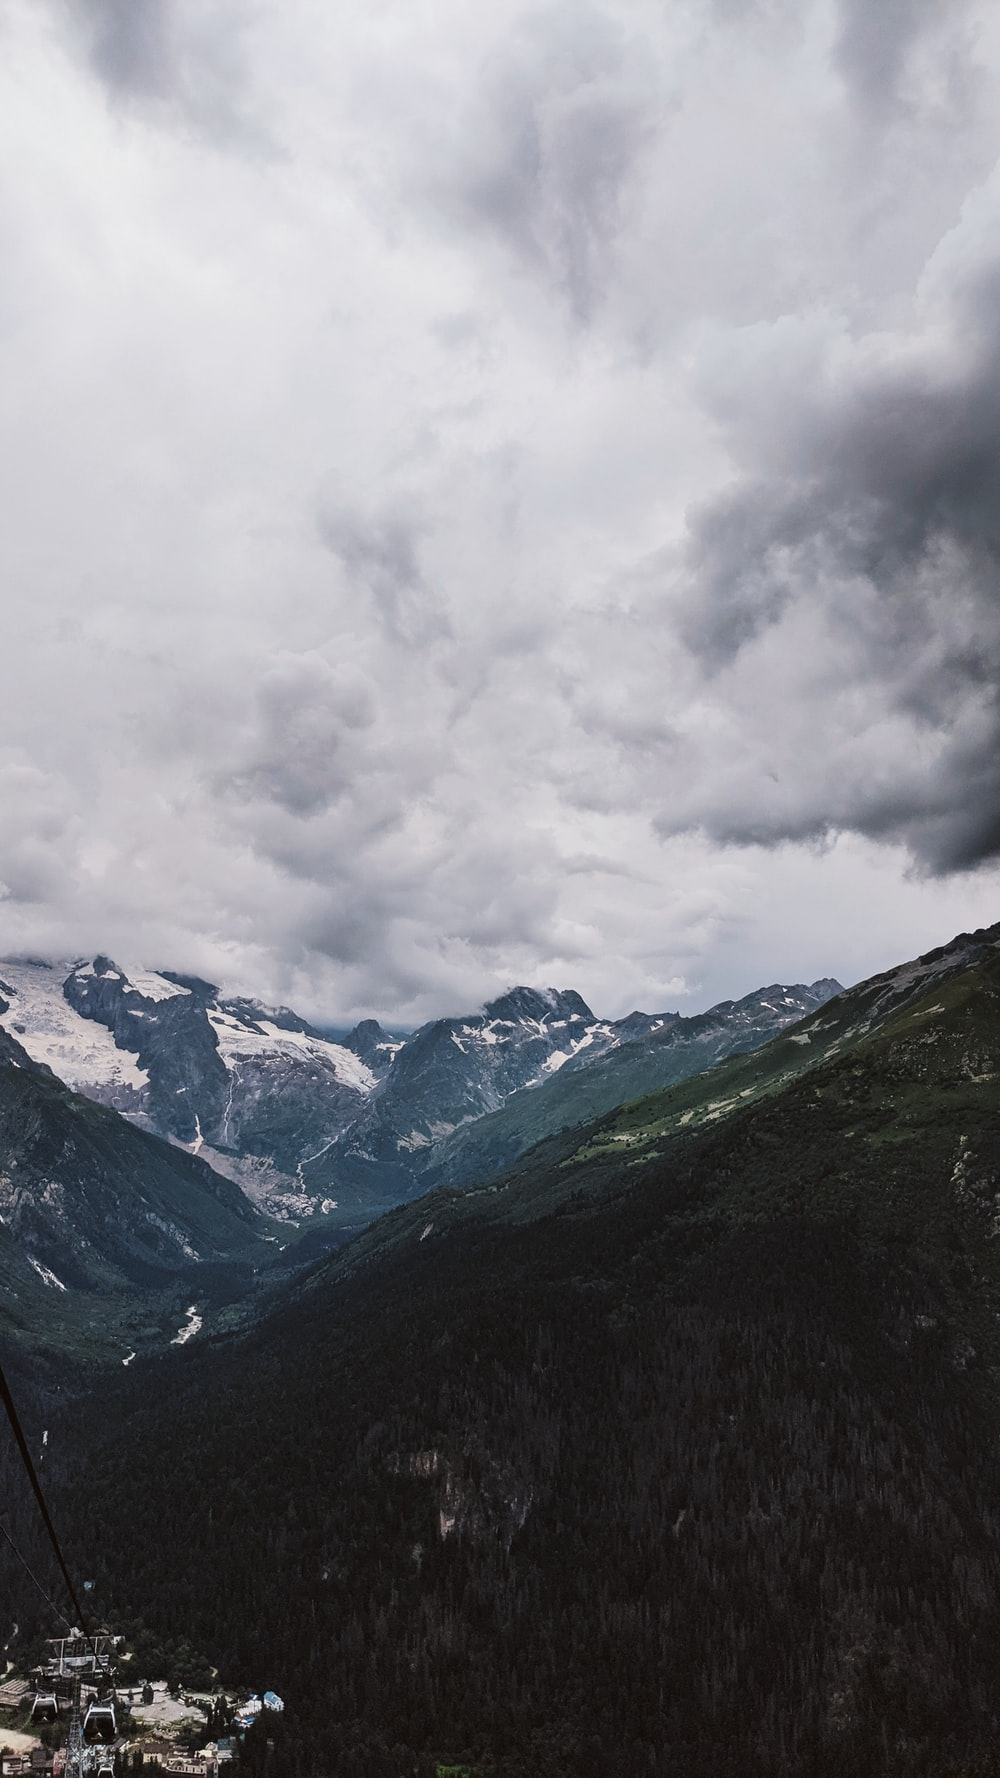 green and white mountains under white clouds